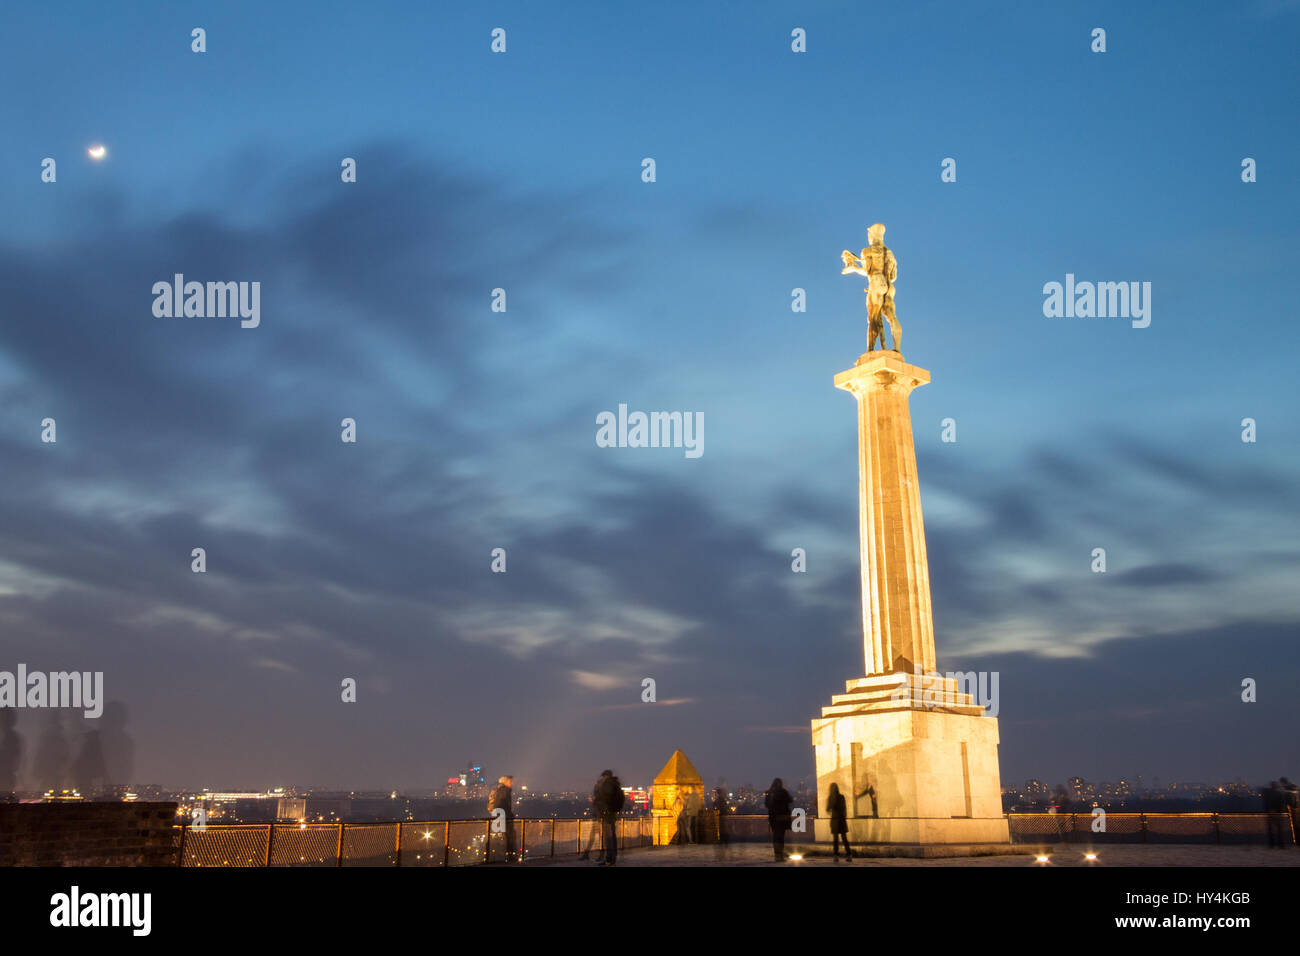 Victor - Victory statue on Kalemegdan fortress by night - Belgrade - Serbia  Picture of the iconic Viktor (Pobednik) - Stock Image